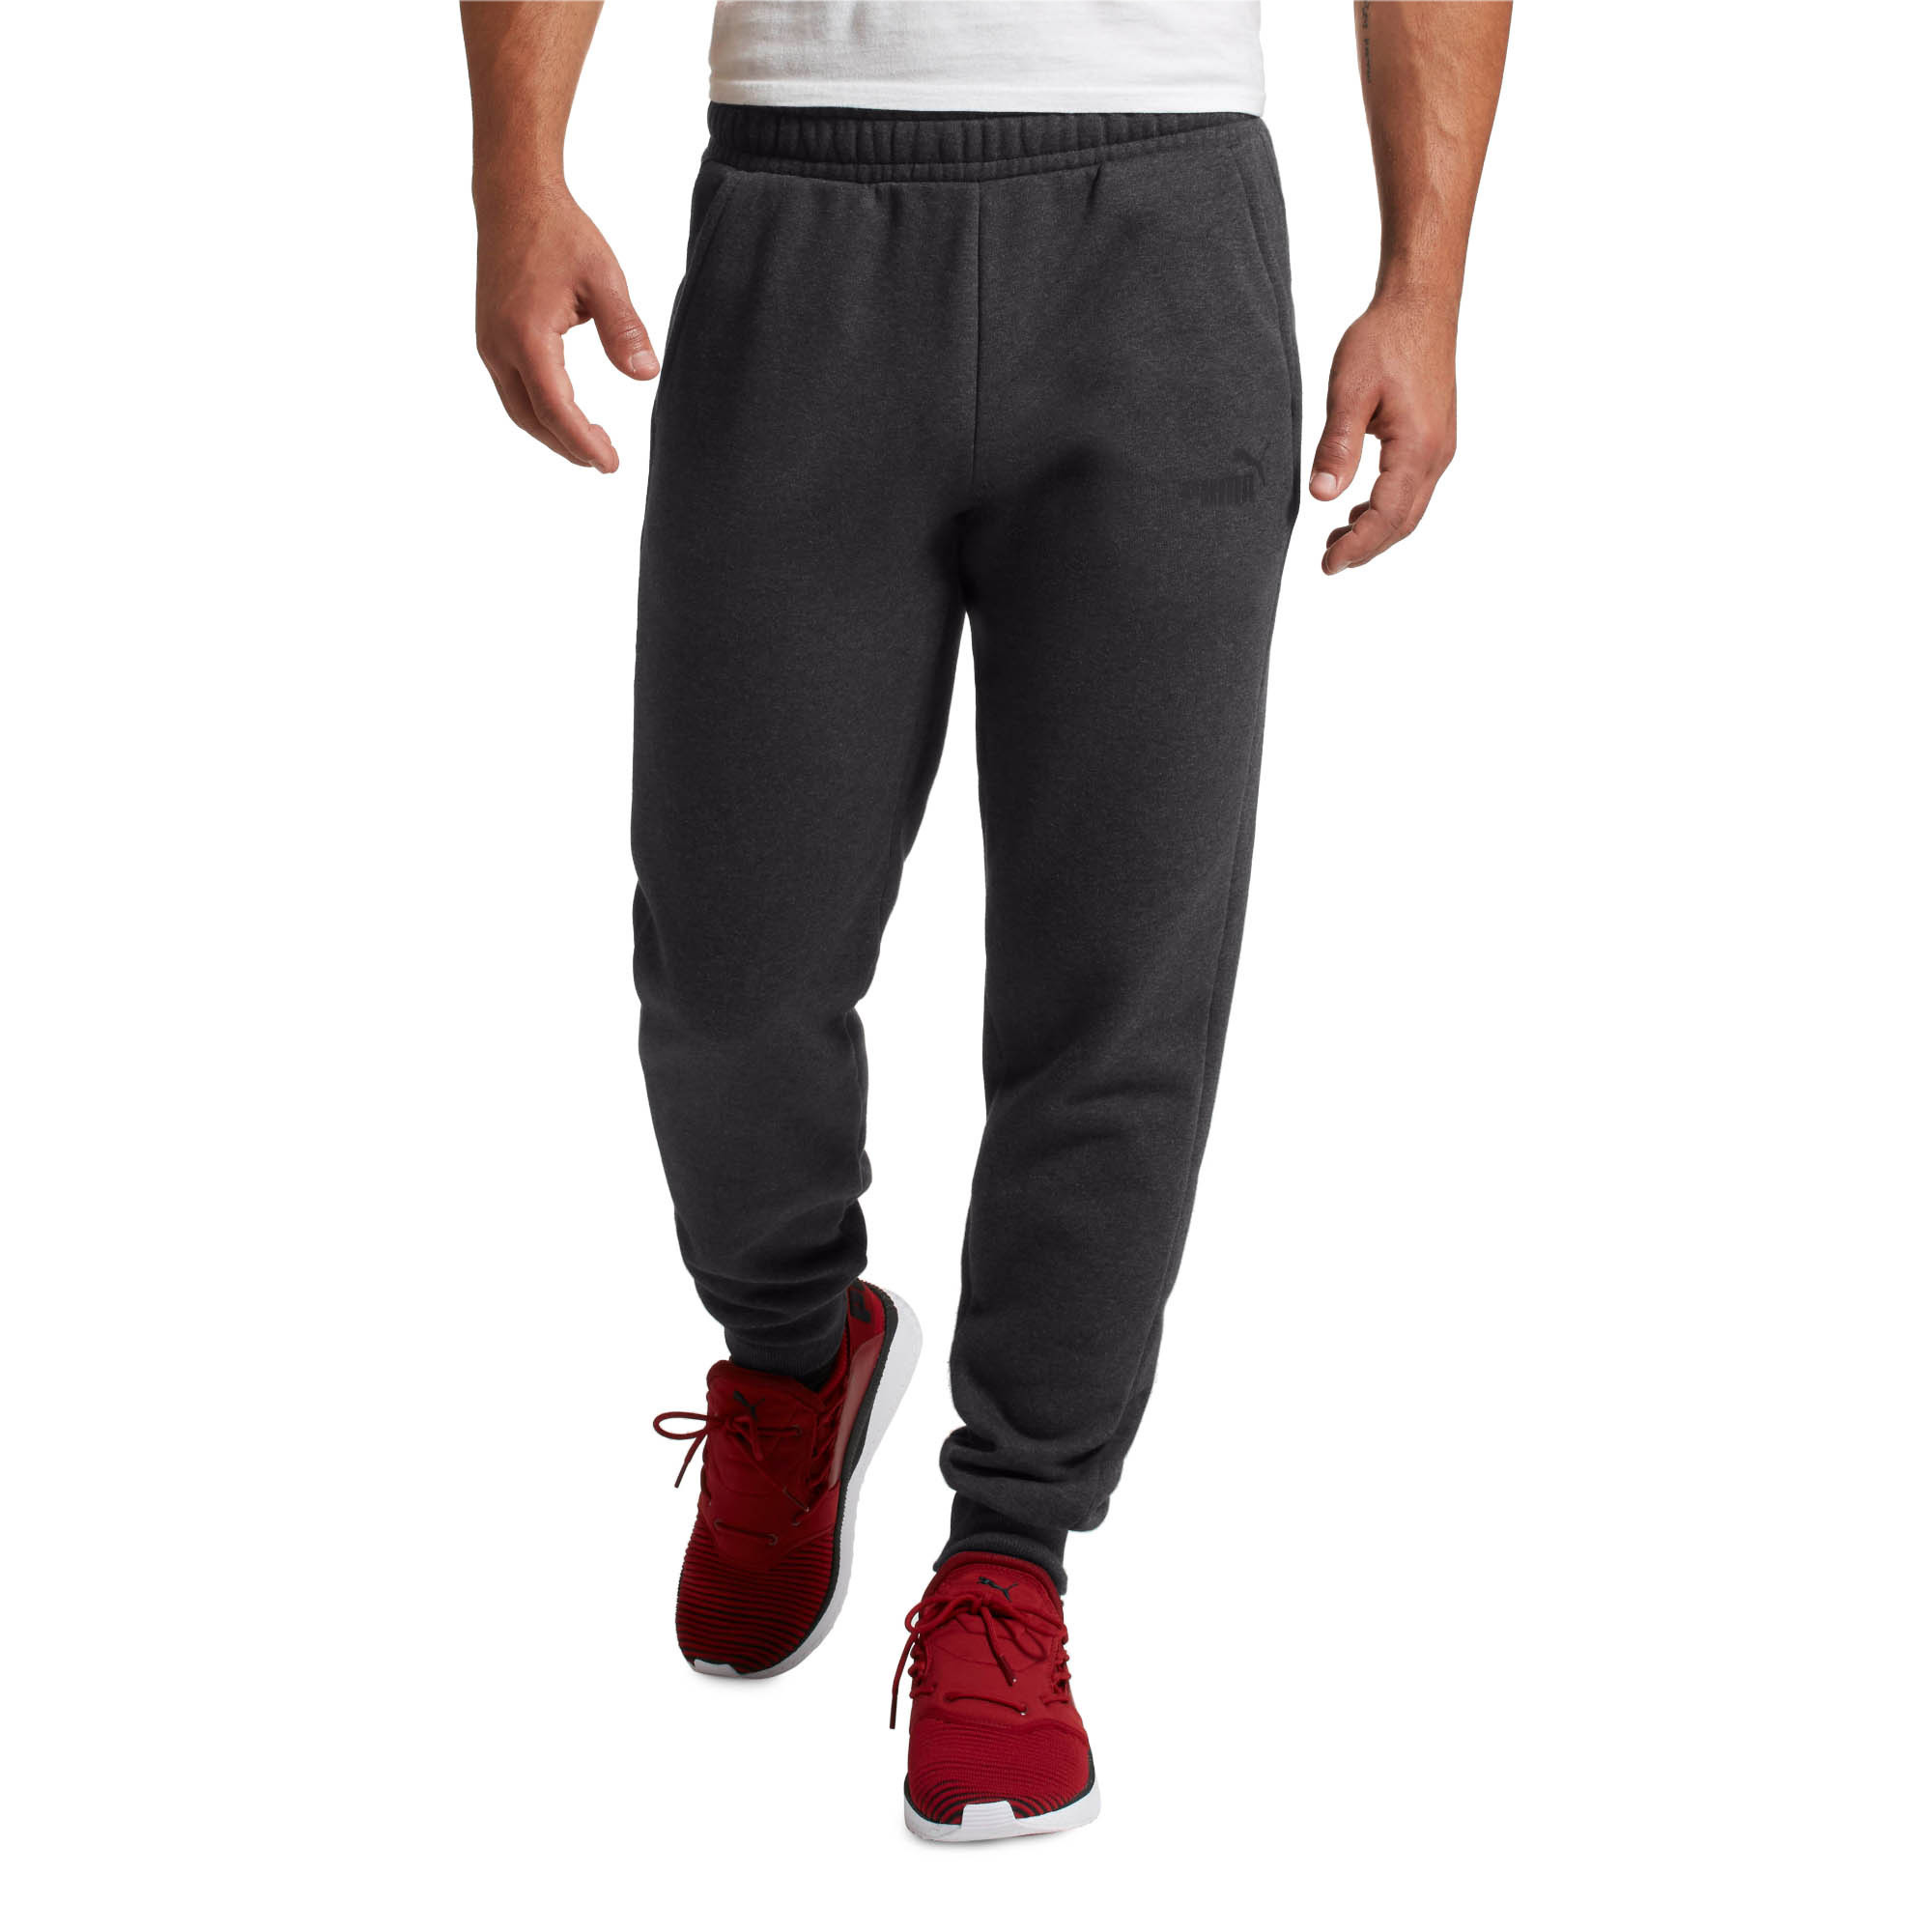 PUMA-Essentials-Men-039-s-Fleece-Knit-Pants-Men-Knitted-Pants-Basics thumbnail 3